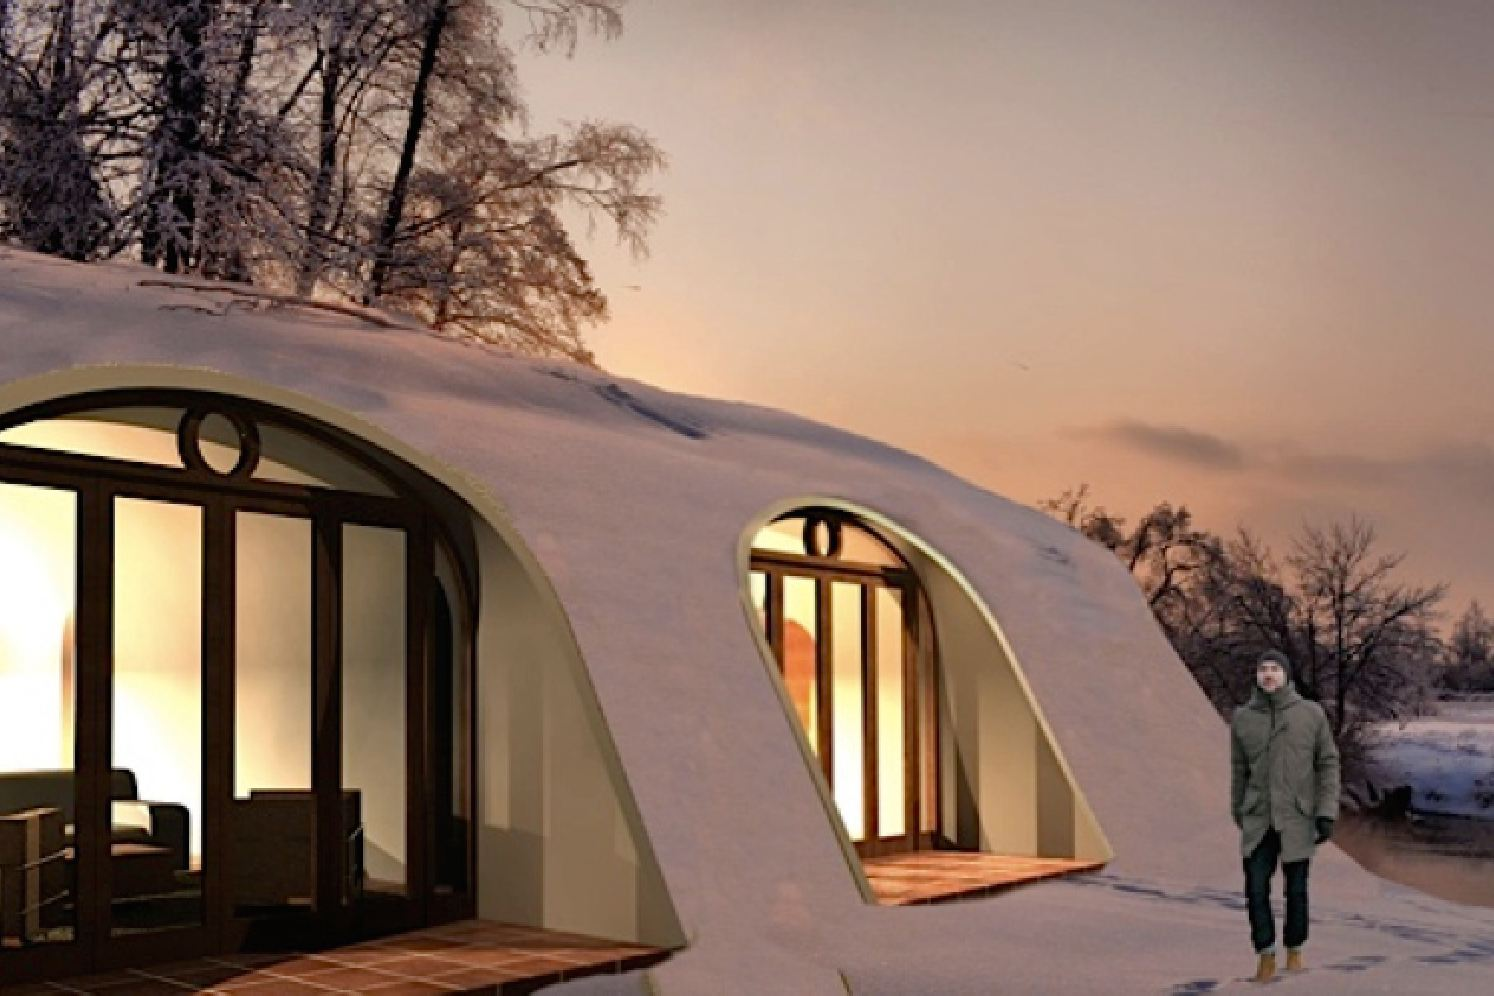 Build This Magical Hobbit House In Only Three Days